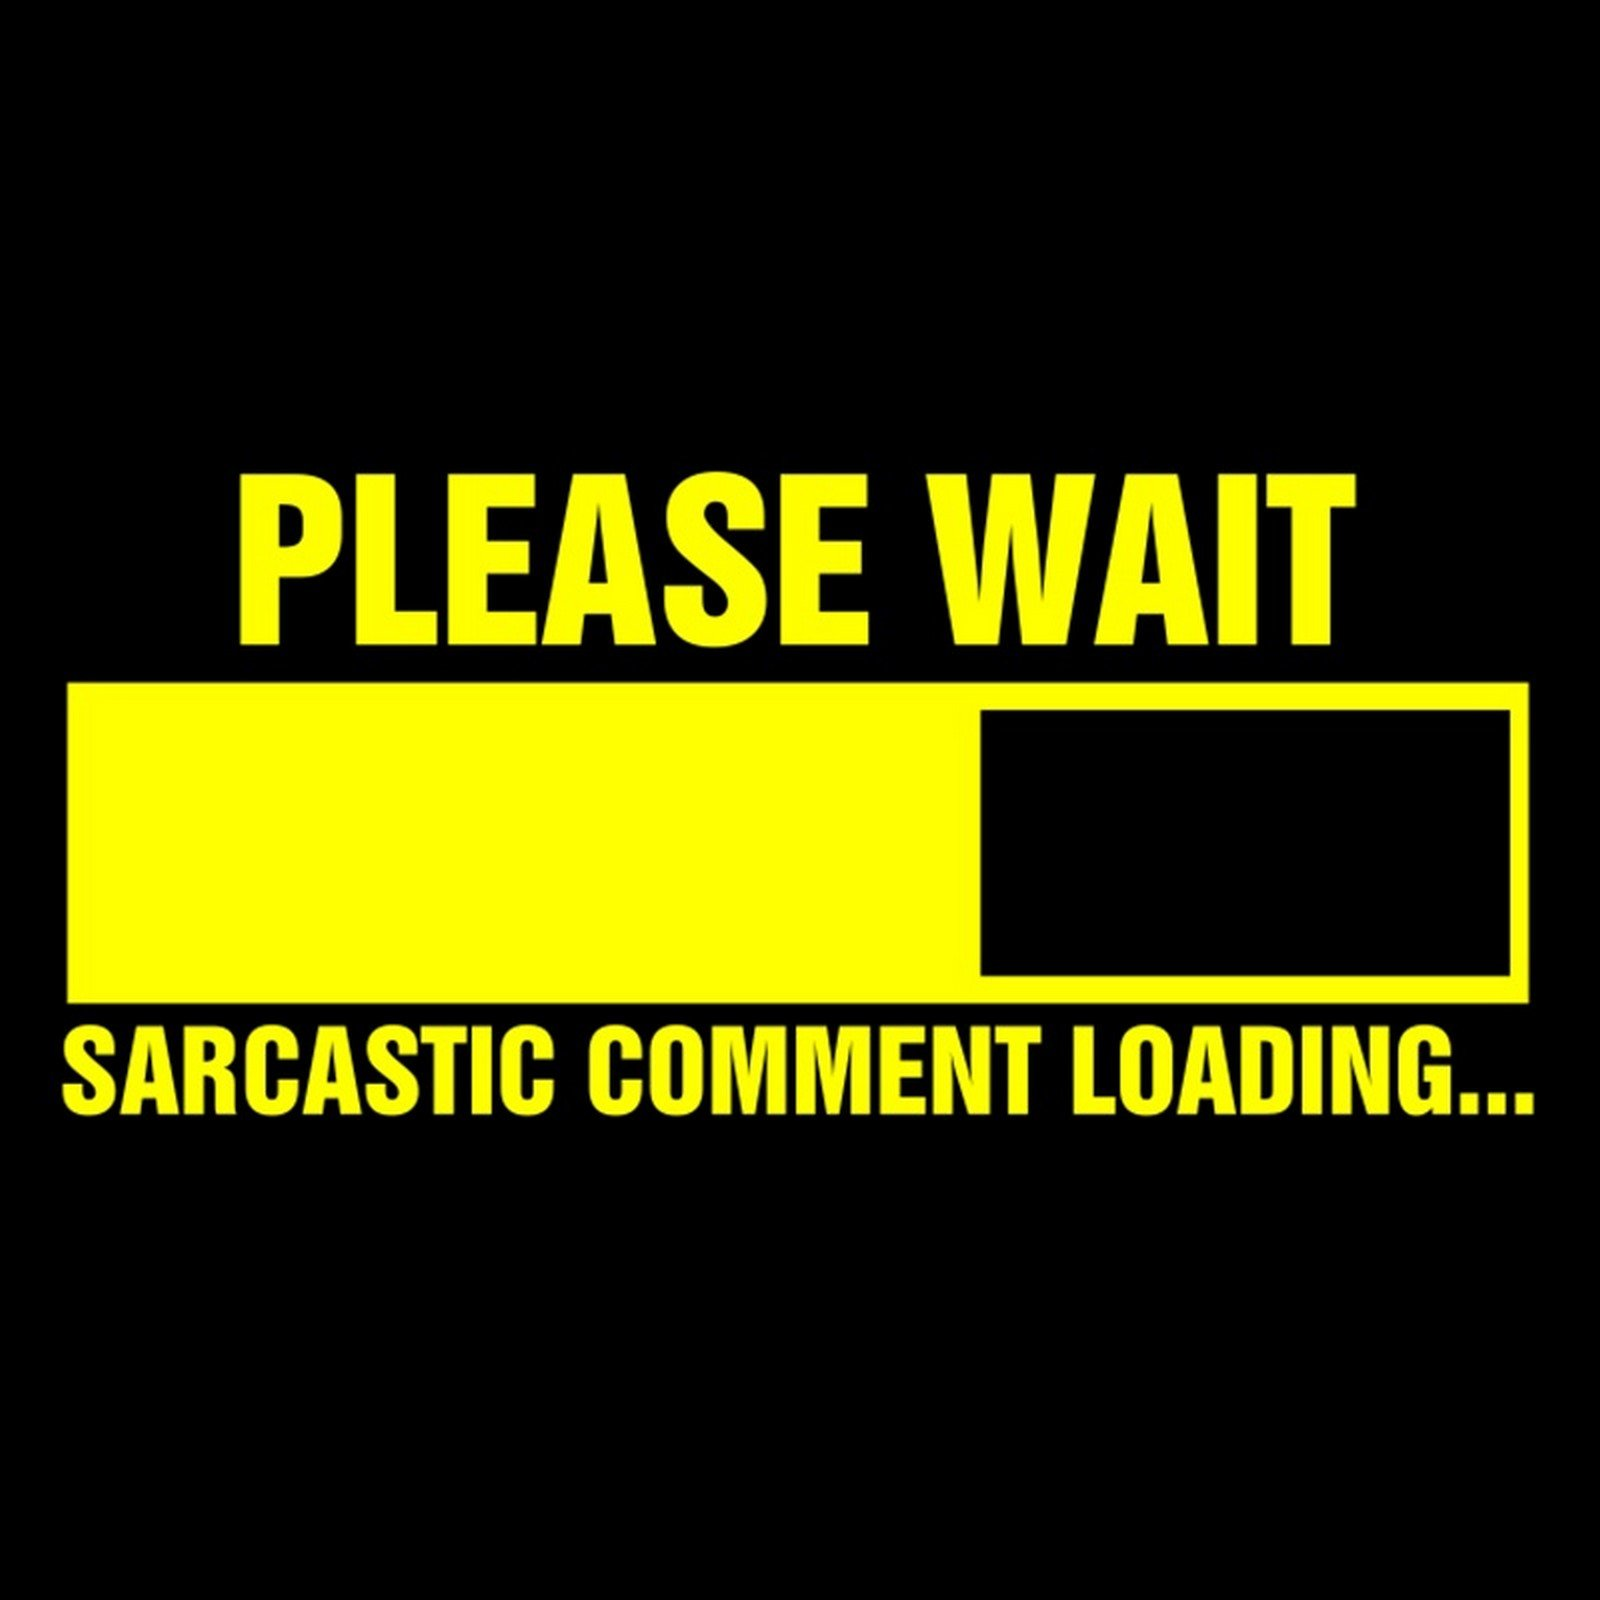 Funny Sayings And Quotes About Sarcasm: Funny Sarcastic Quotes. QuotesGram